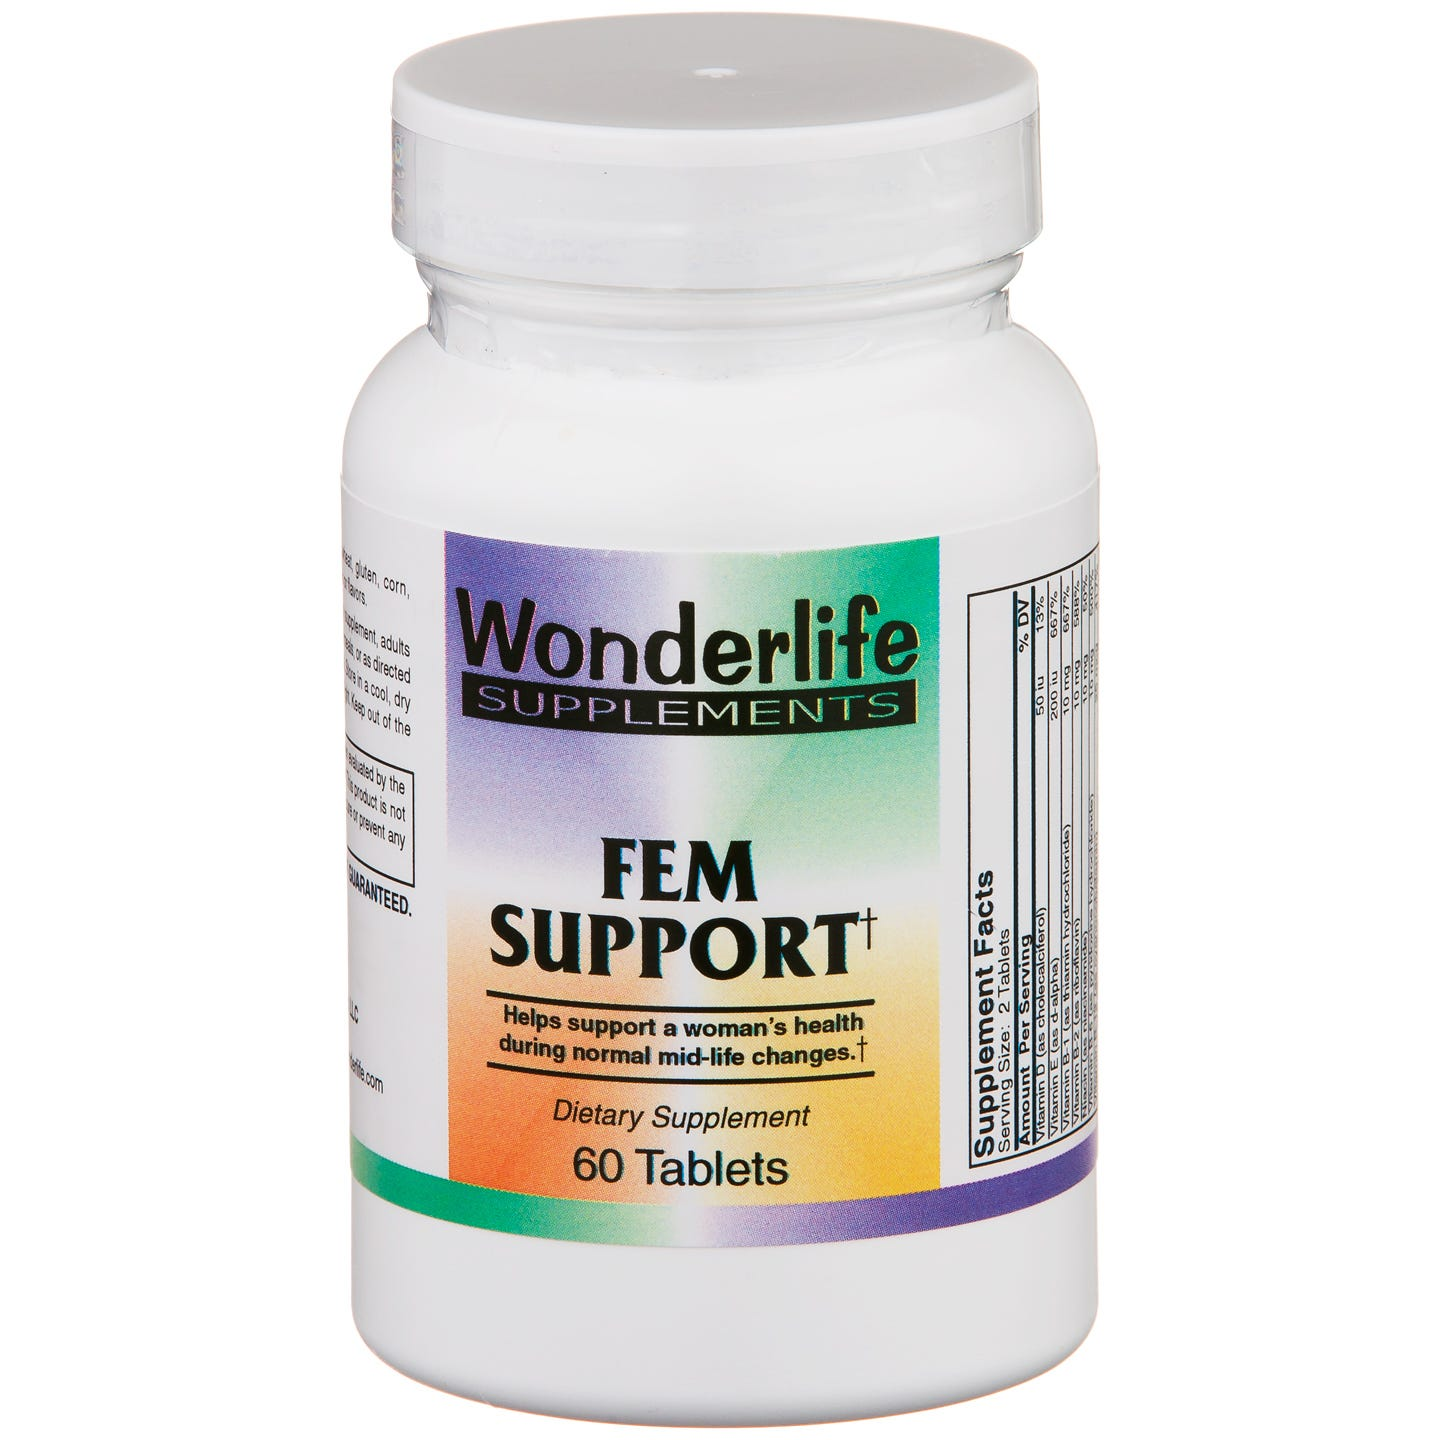 Fem Support (60 ct) - Wonderlife - Rapid Diet Weight Loss Products Shop